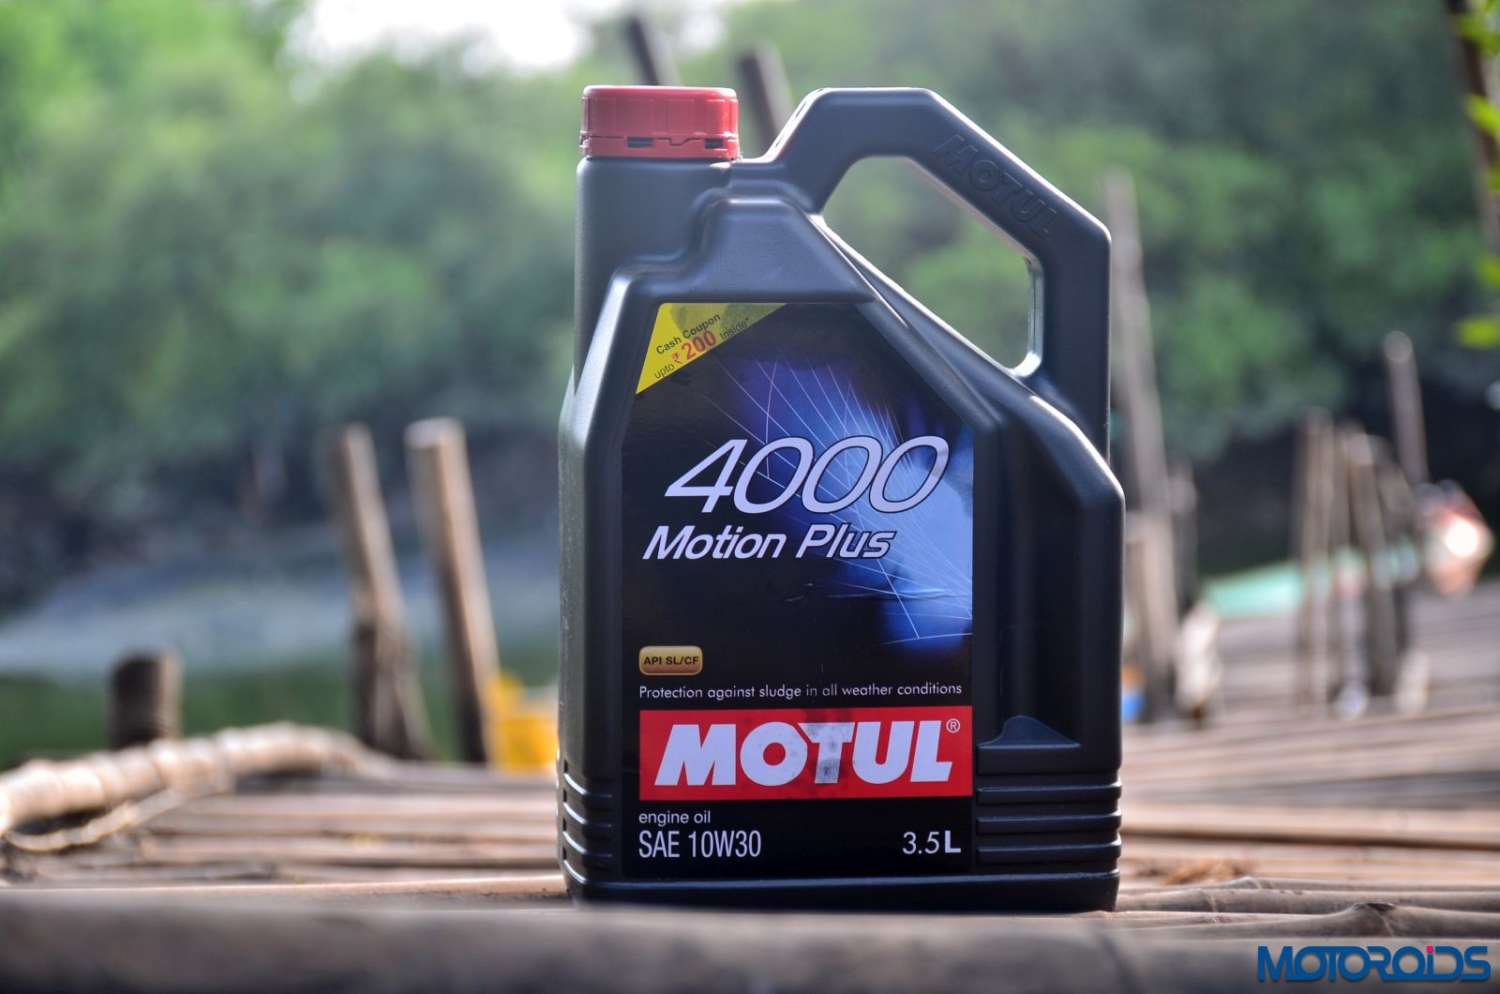 Motul All About Lubes : Why Choose 5w30 / 10w30 Over 20w50